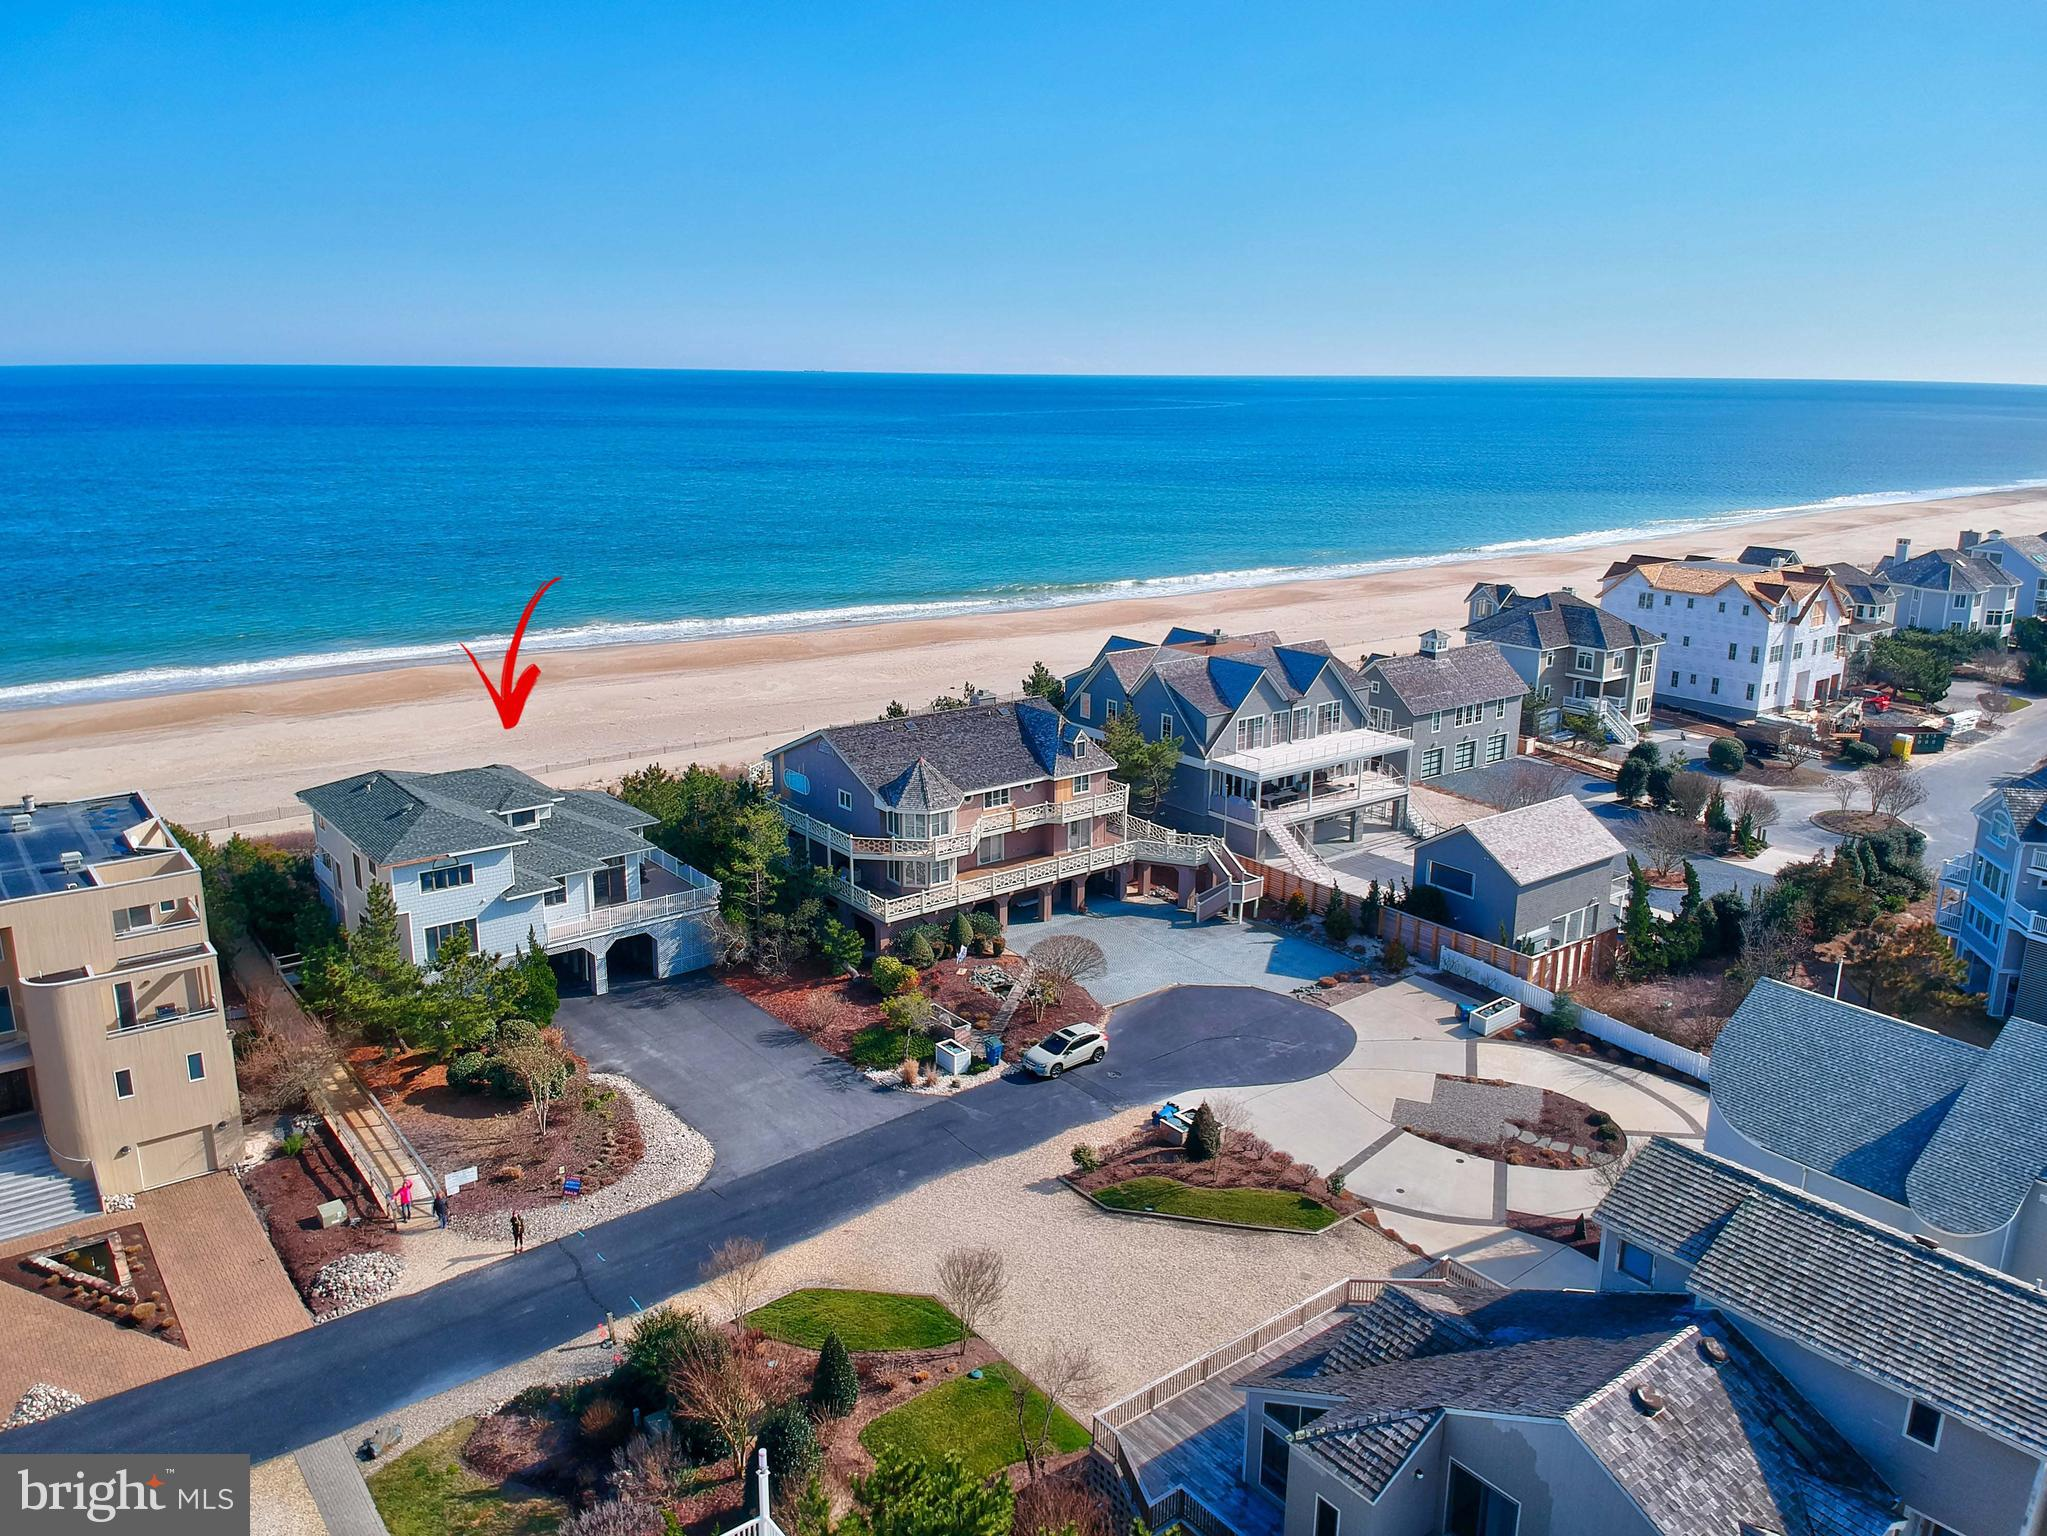 Relax & soak up the tranquility of the ocean air and waves from your front deck!  75 foot lot and a well maintained home with oversized wrap around decks, roof and heat pump replaced in 2013, new irrigation system.  Rentals--$14,500K in peak weeks. It is a turn key home waiting for you!